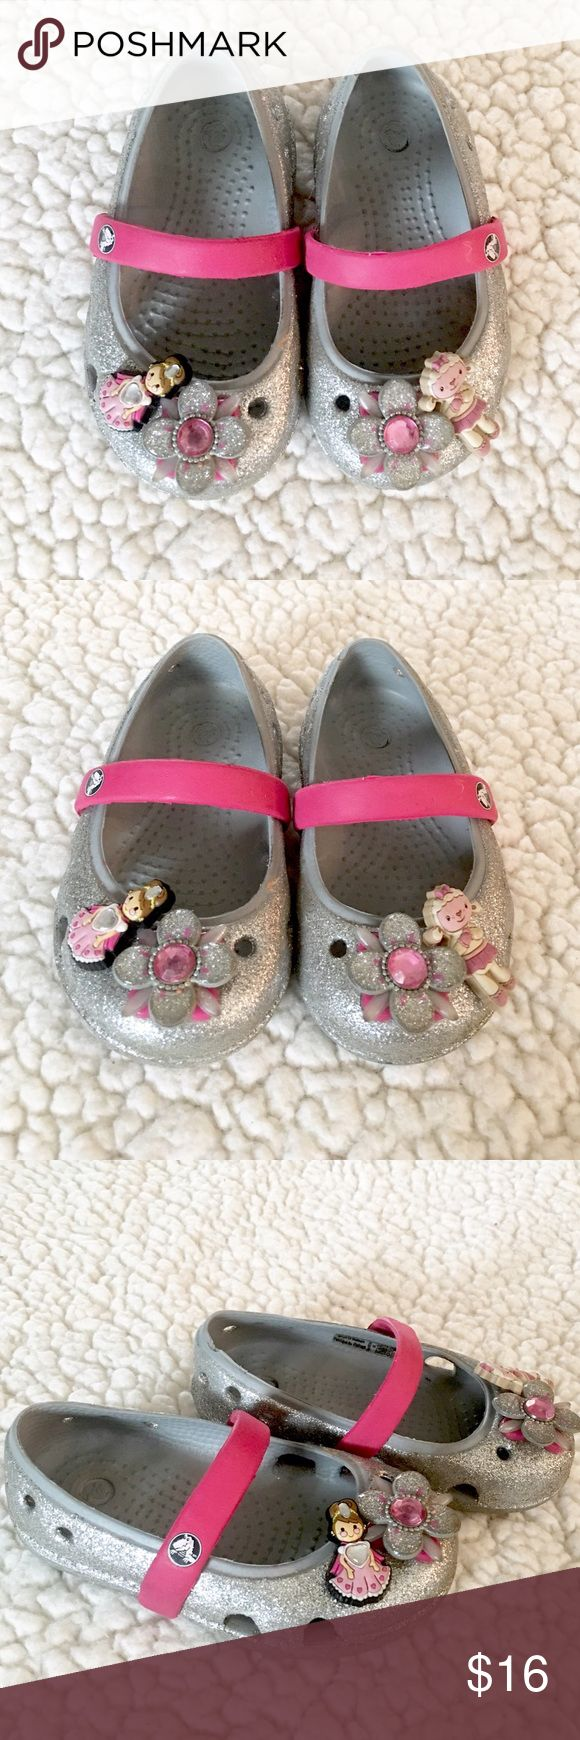 Gorgeous Toddler Crocs Like New! Gorgeous Toddler Crocs Like New condition. Came with the flowers in the middle but not with the accesories(pins) CROCS Shoes Sandals & Flip Flops